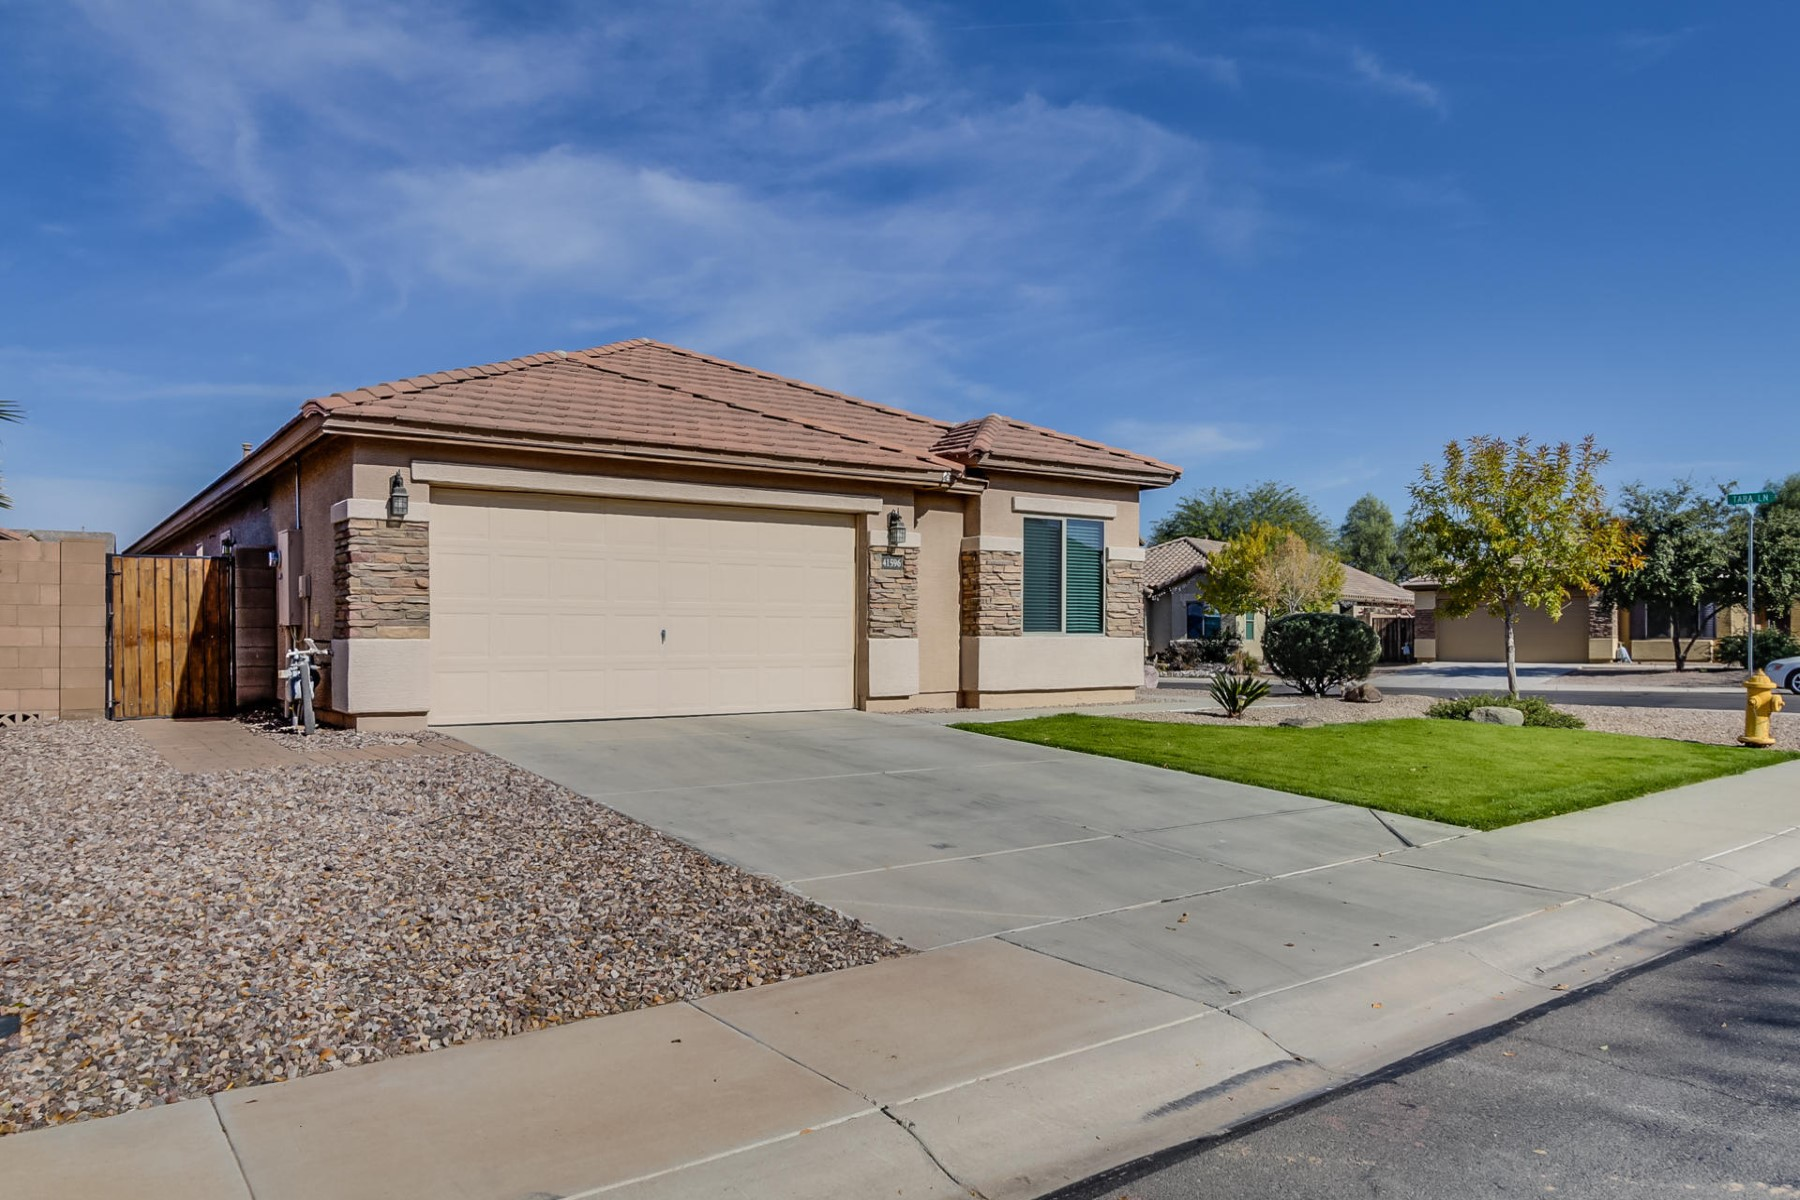 maricopa az houses for sale in pinal county page 15